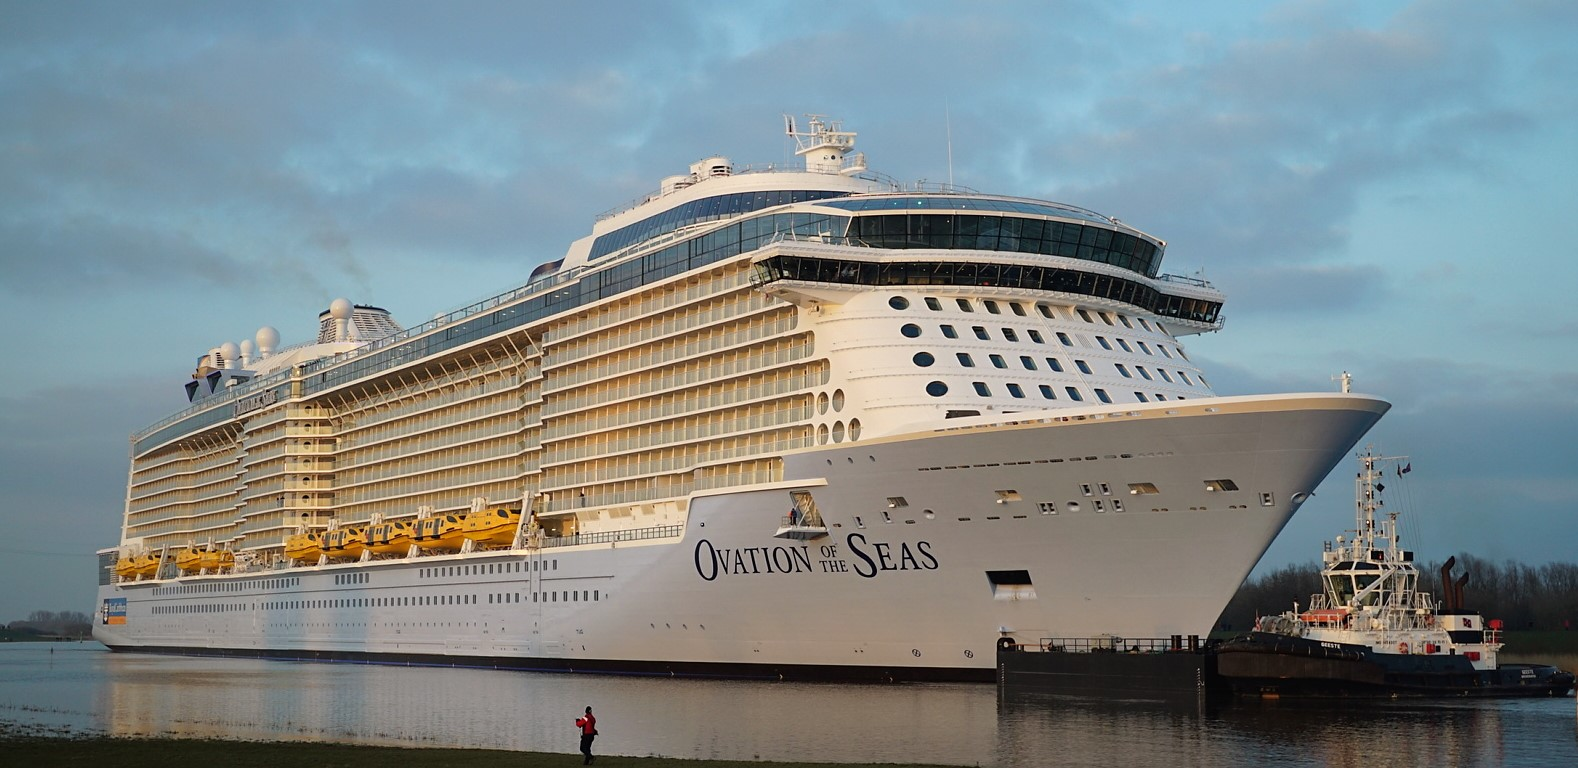 The 5000 Passenger Ovation Of Seas Begins Its 26 Mile Conveyance To